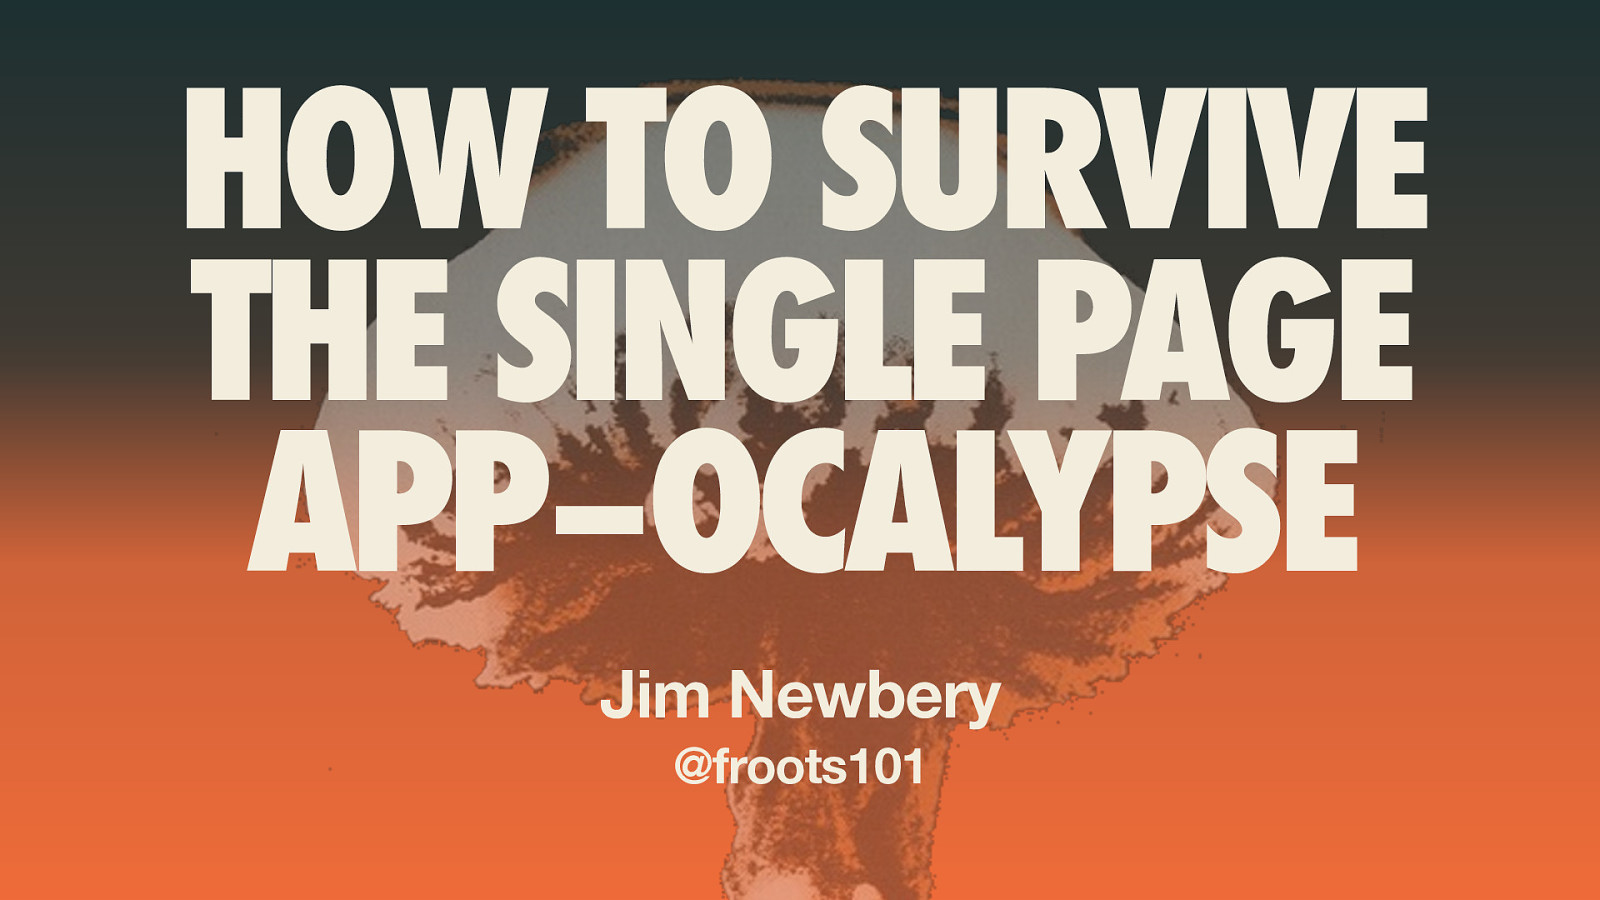 How to Survive the Single-Page App-ocalypse